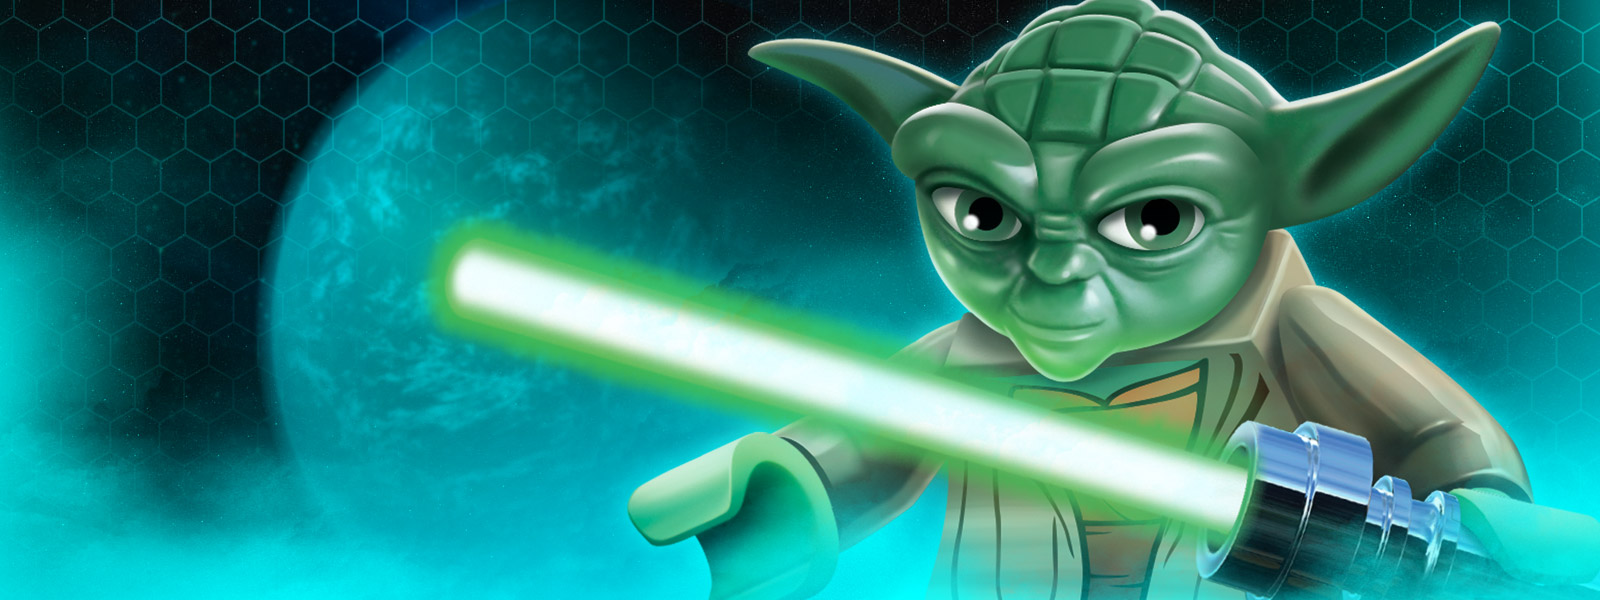 Lego yoda chronicles